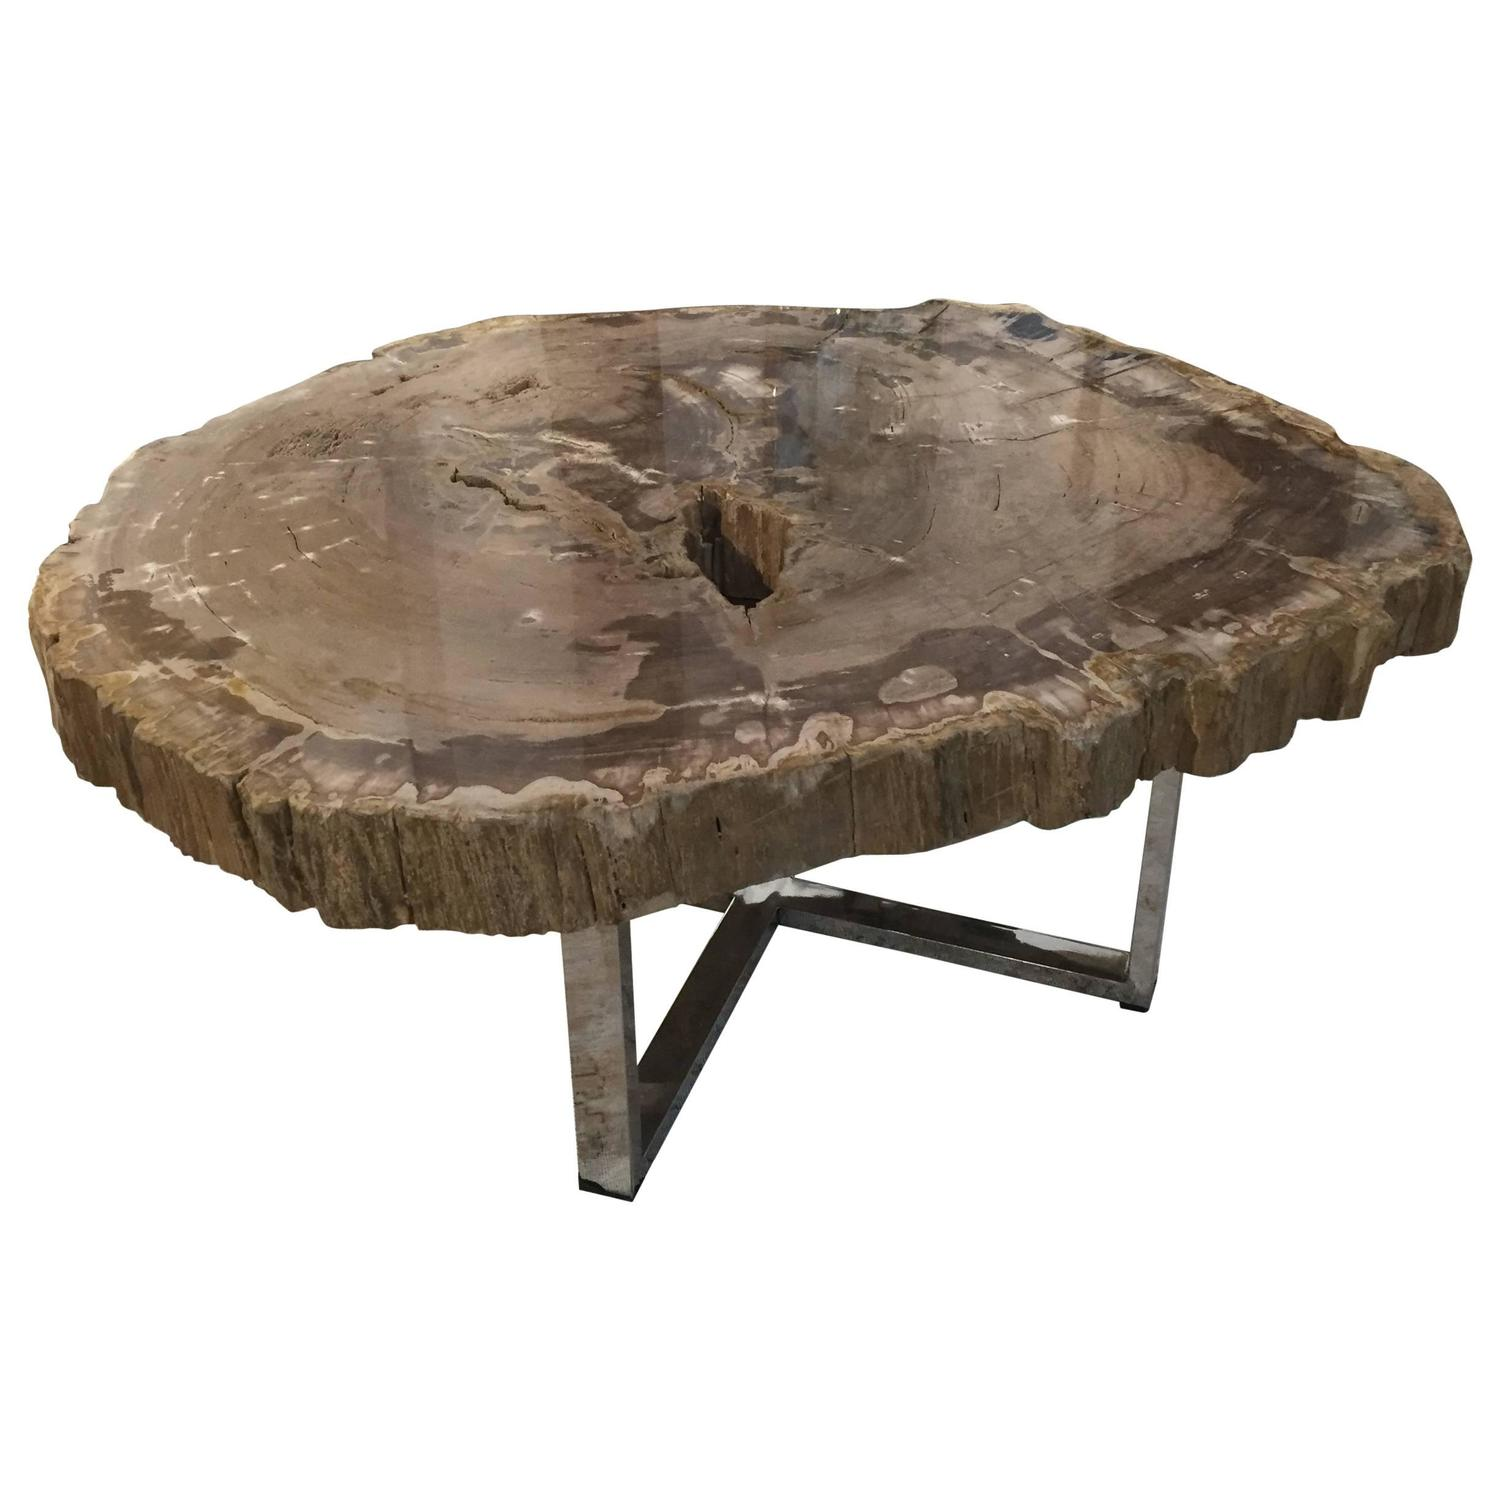 Very Nice Large Modern Petrified Wood Coffee Table With Steel Base At 1stdibs